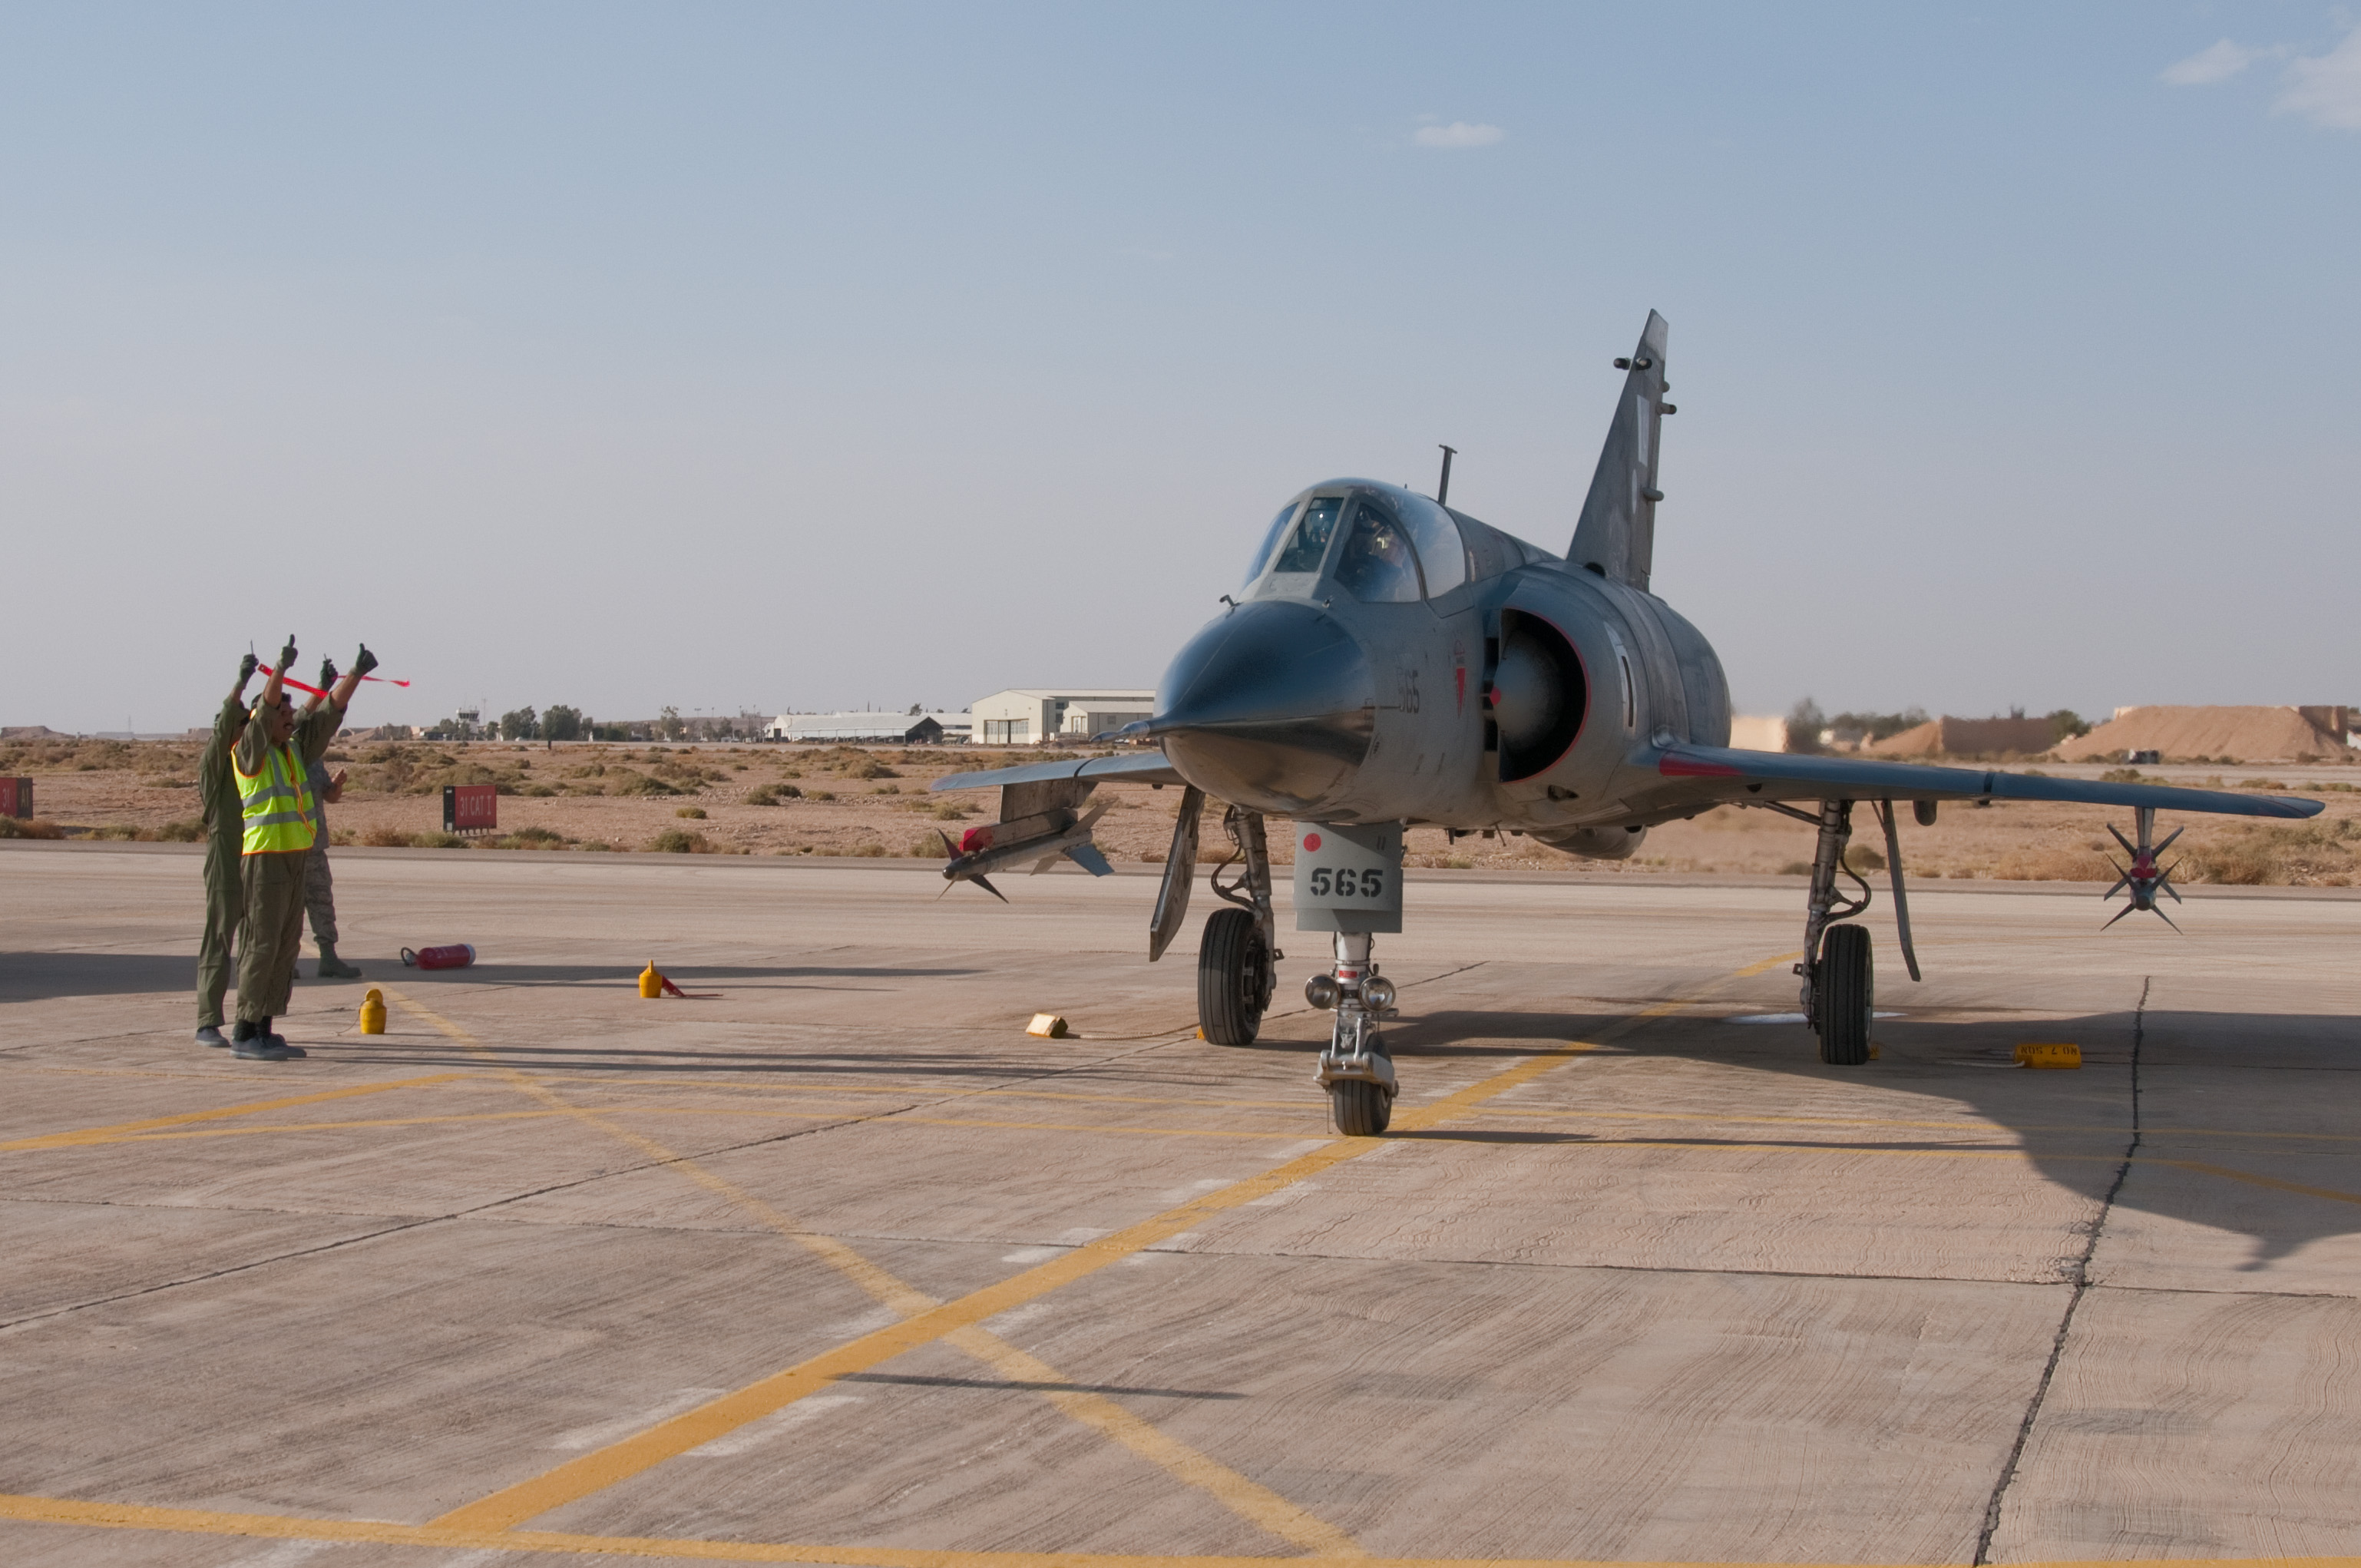 History of the Pakistan Air Force